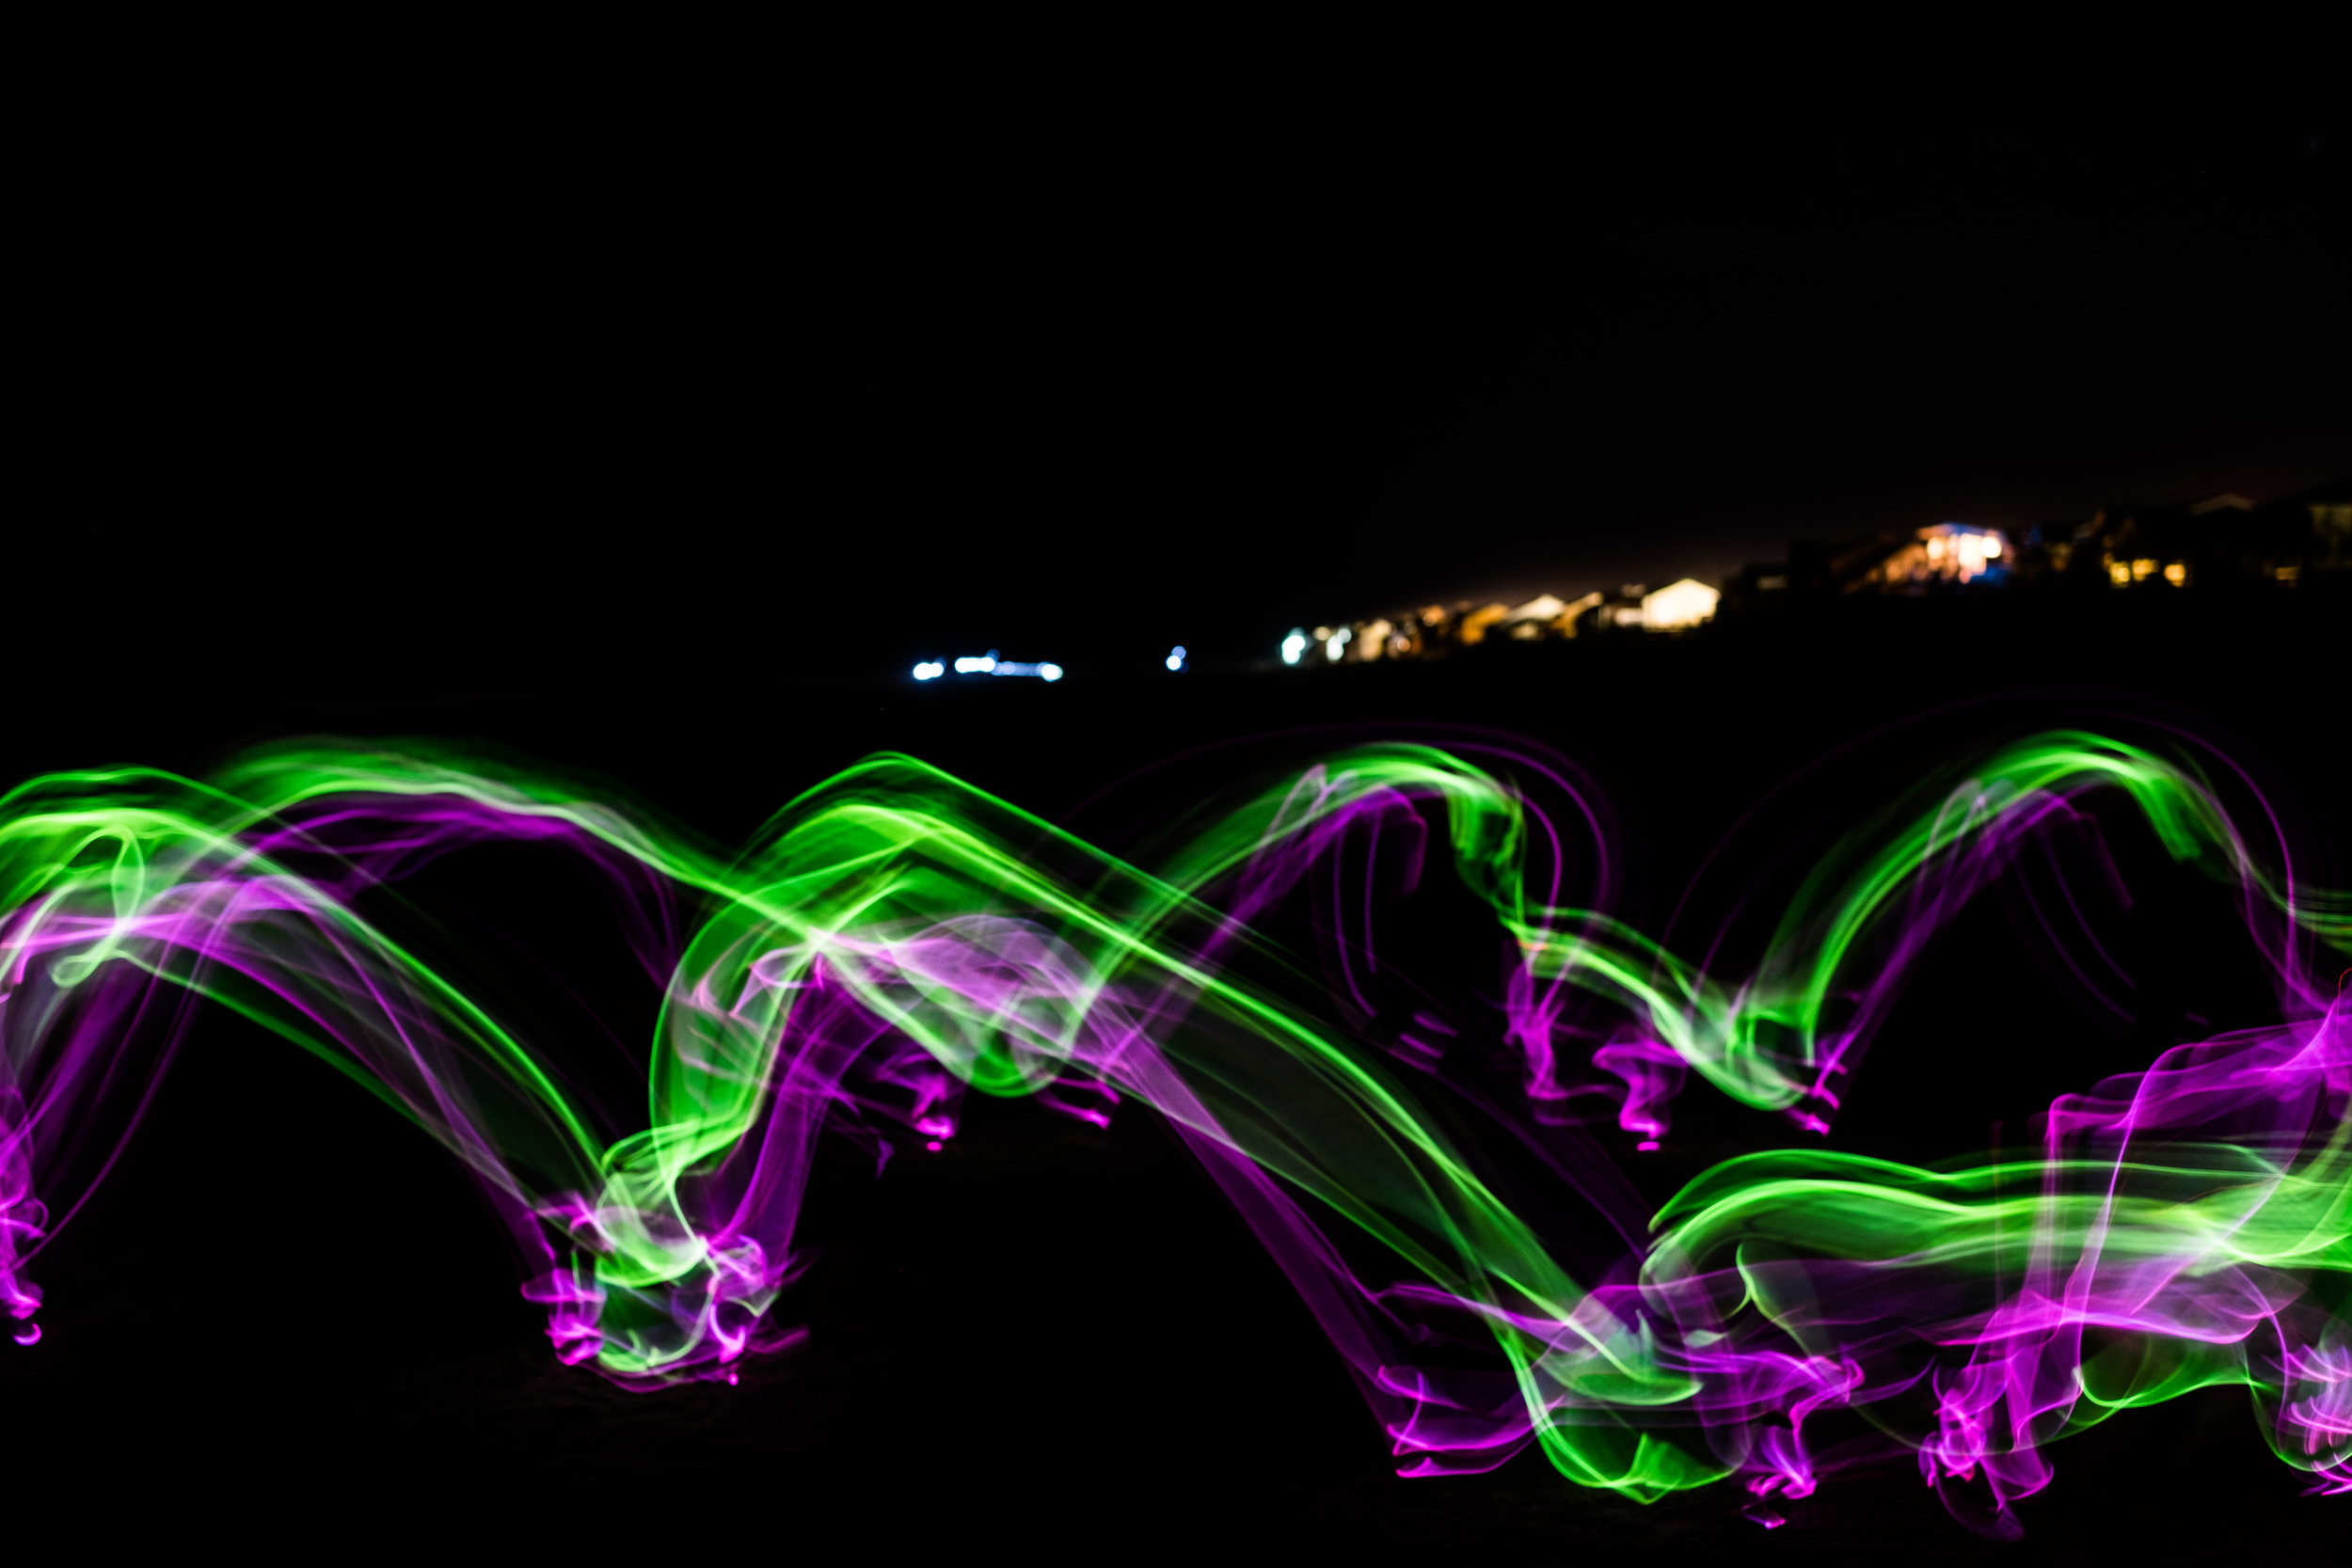 T's light trails resulting from cartwheels